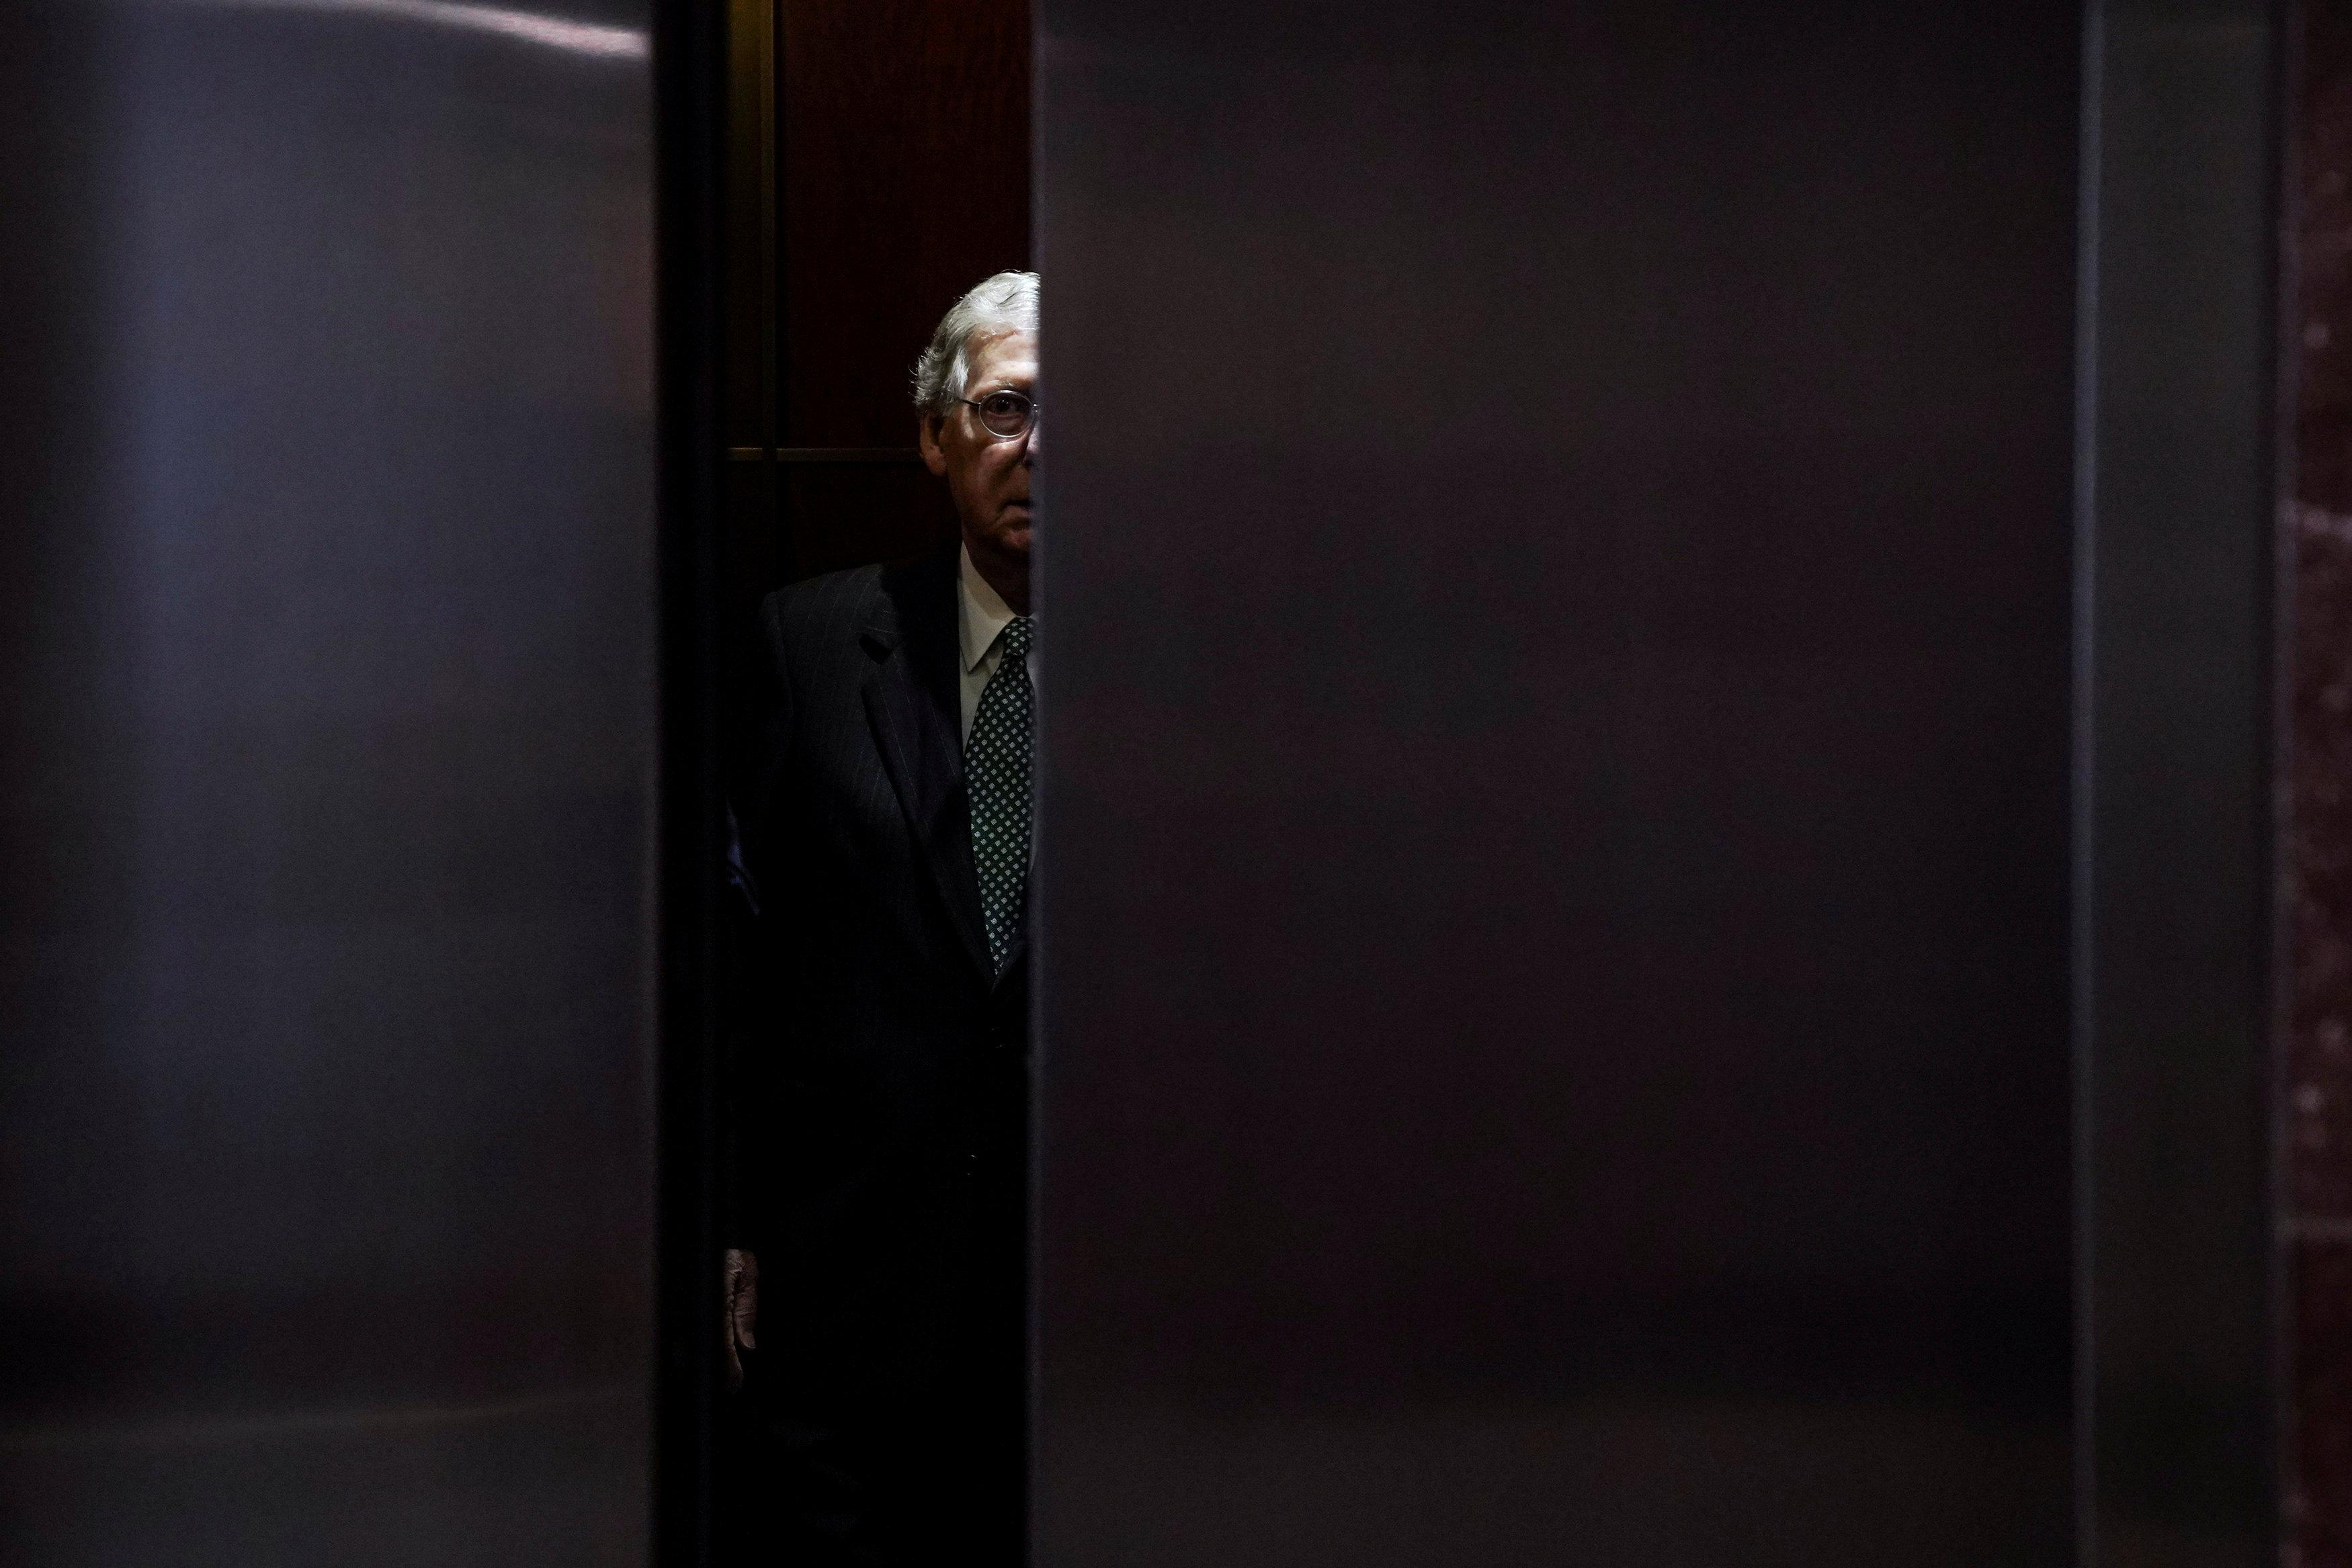 U.S. Senate Majority Leader Mitch McConnell arrives for the so-called